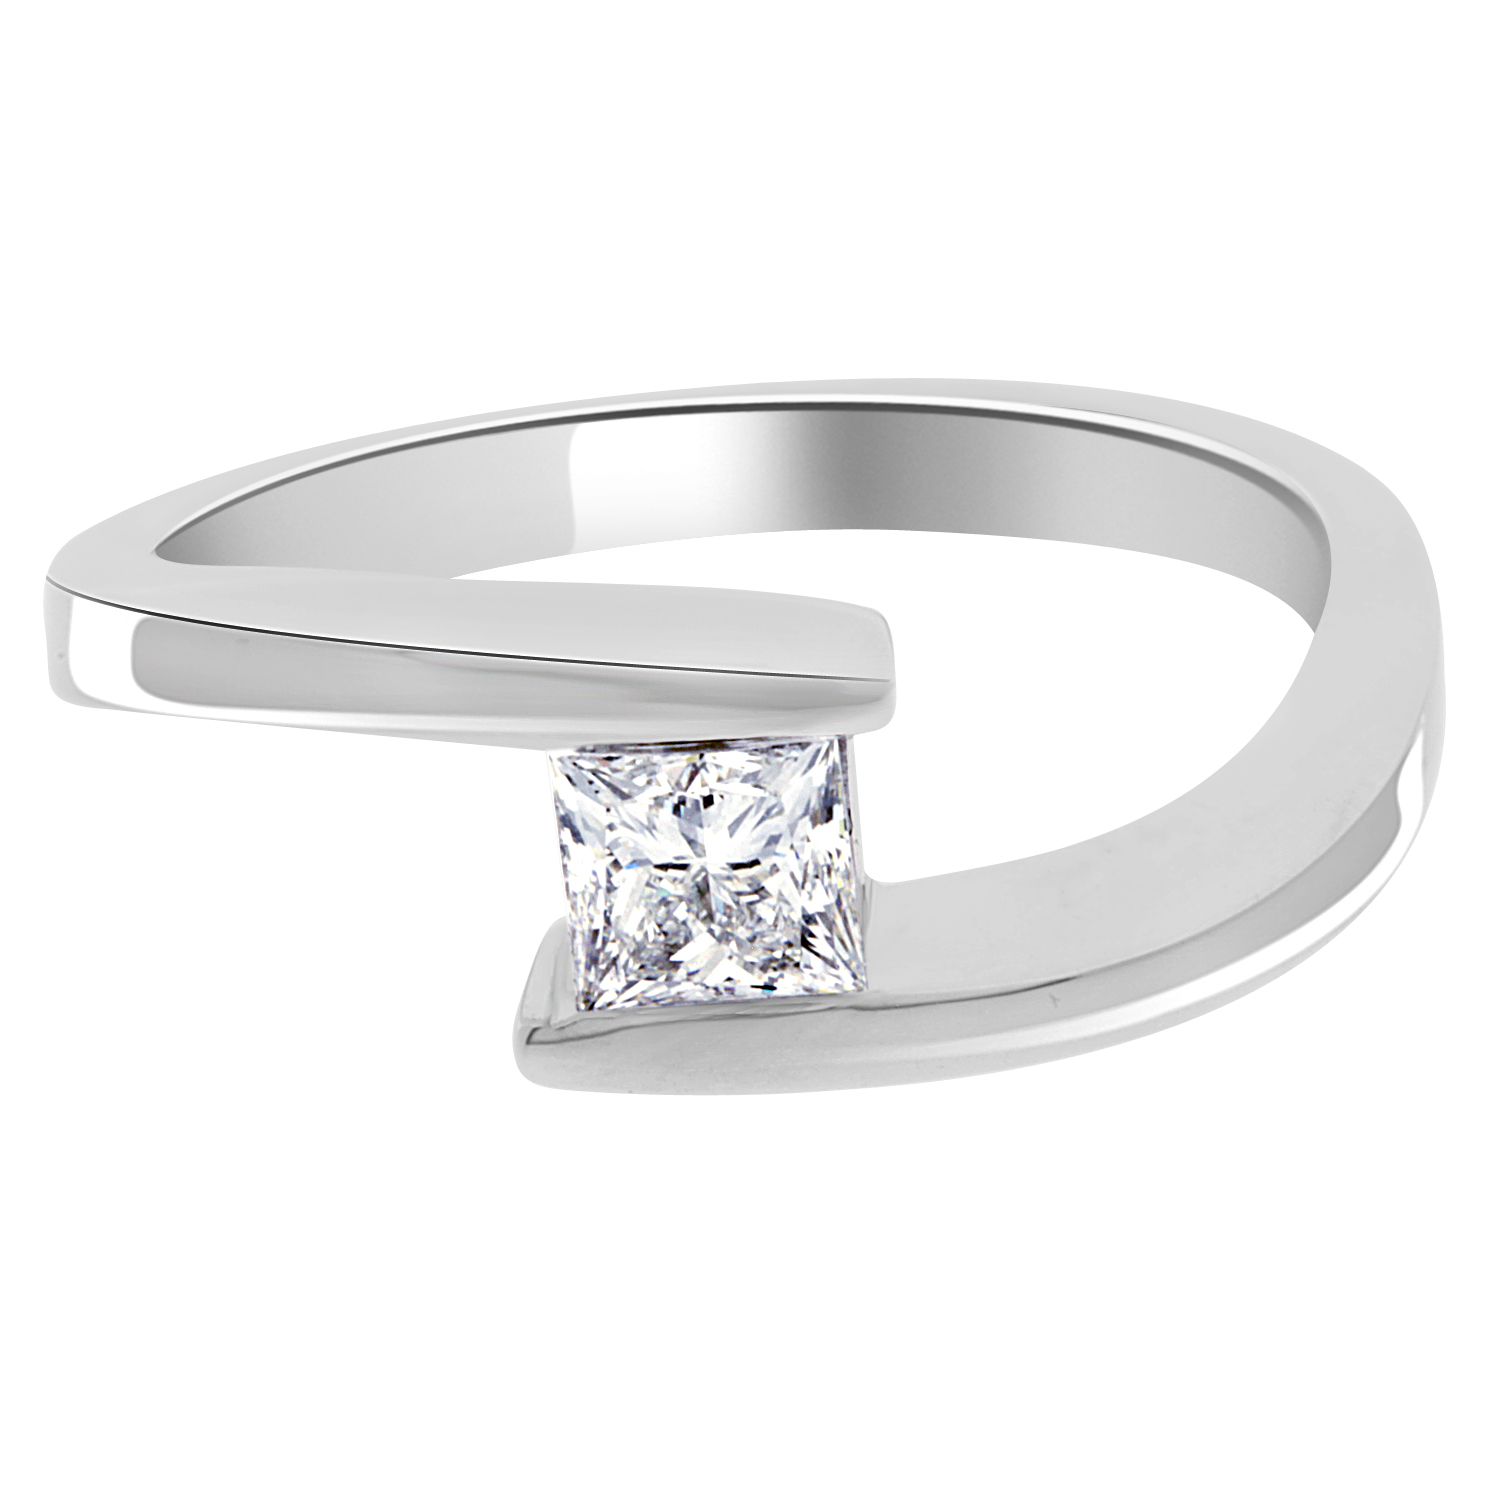 jens ring rings platinum tension products diamond set white a hansen